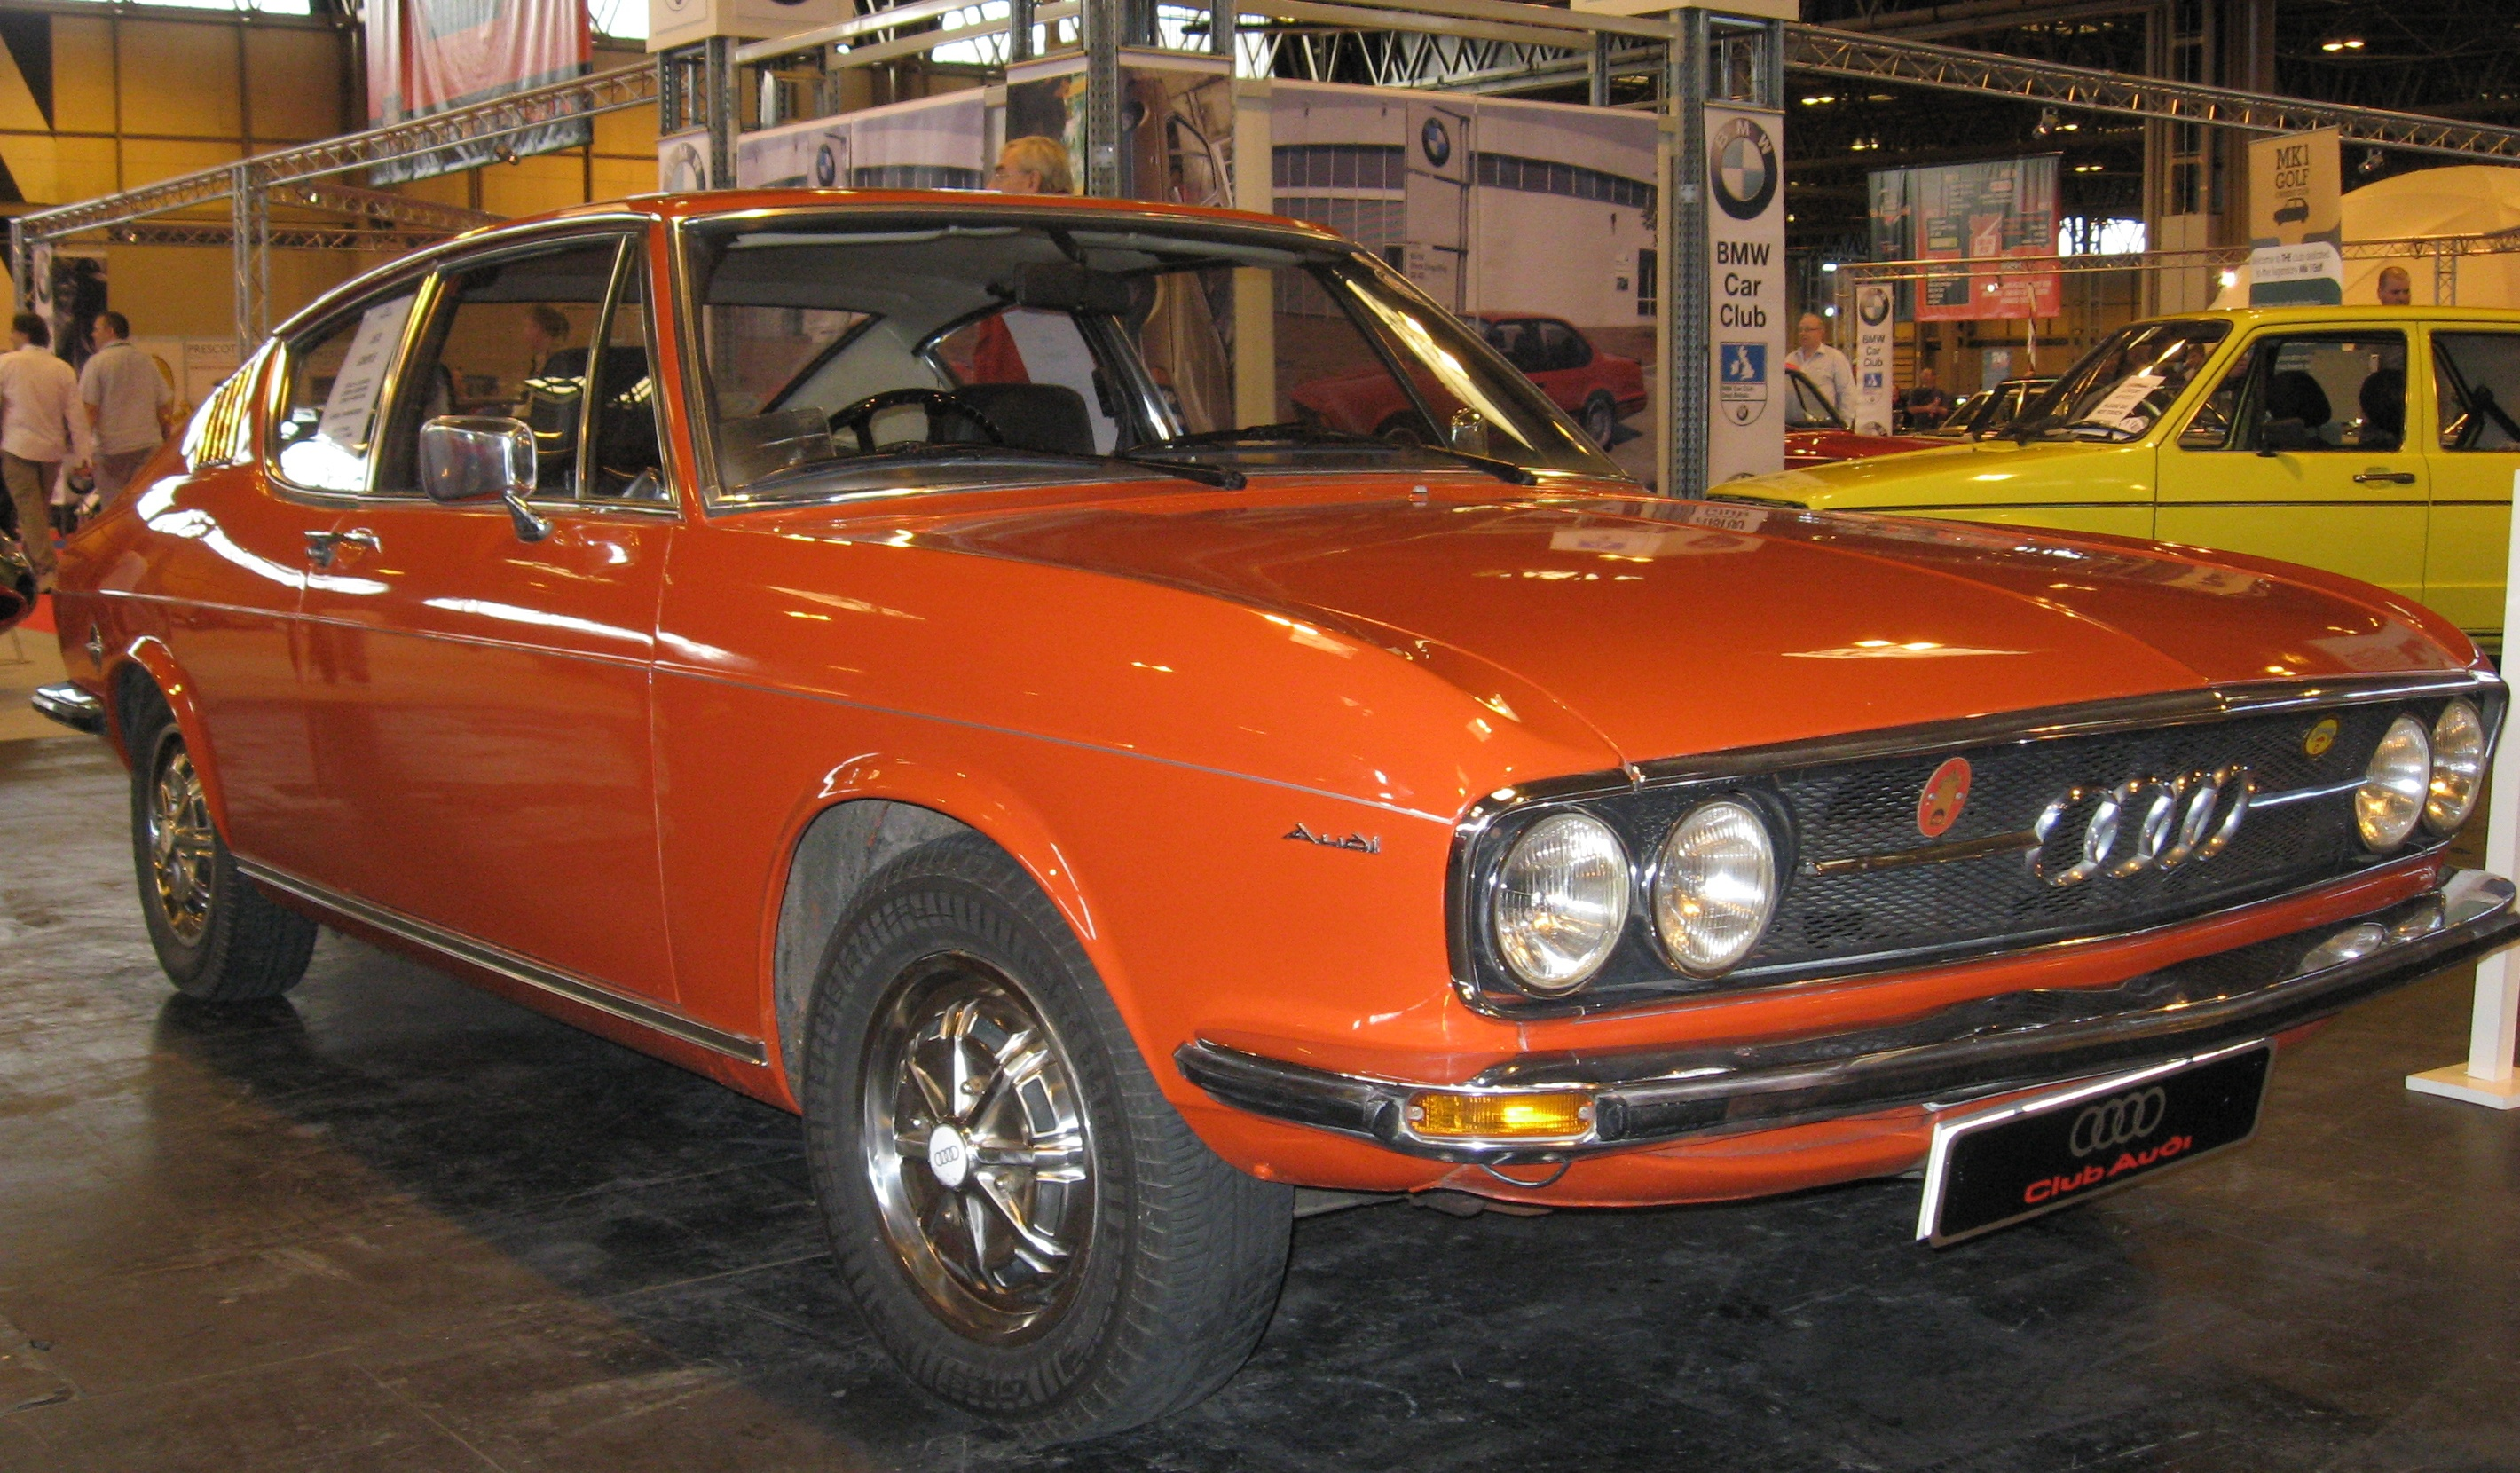 file1973 audi 100 coupe s wikimedia commons